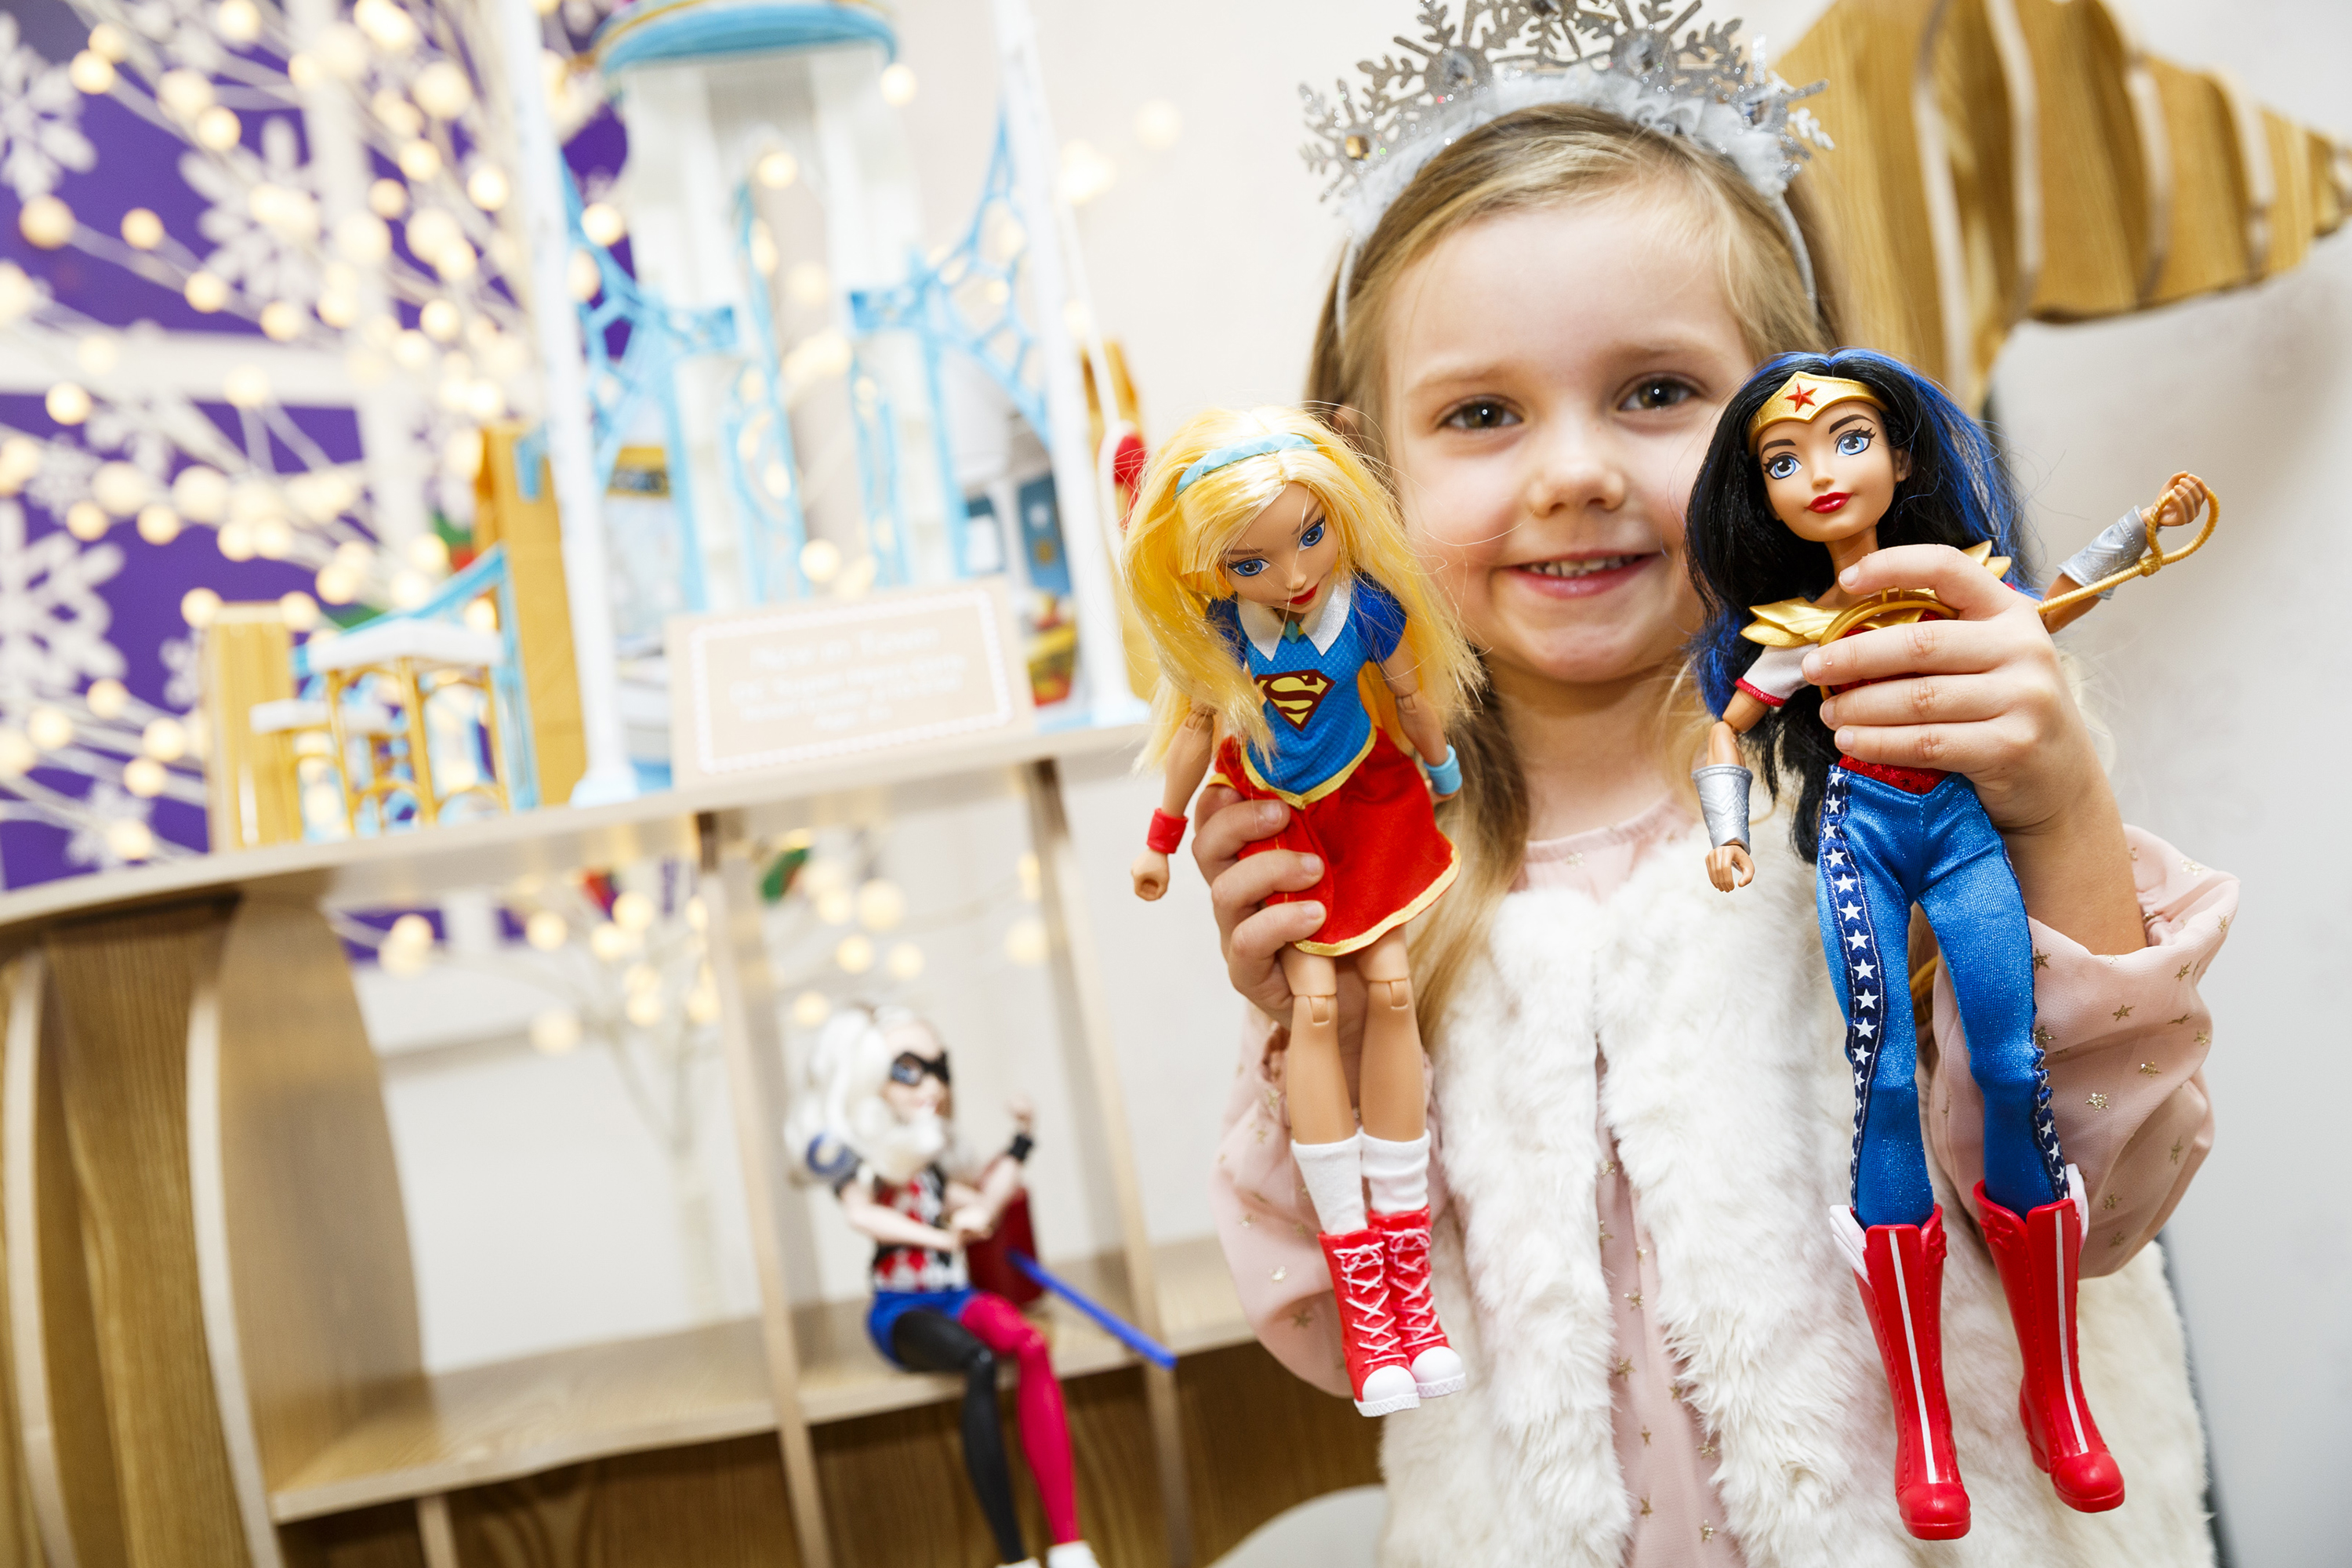 A little girl holds up Supergirl, left, and Wonder Woman, two characters from Mattel's DC Super Hero Girls collection. The appearance and dress of the new generation of fashion doll characters is a departure from Barbie's idealized image and has changed the way children play, according to graduate student Sara Austin. (Tristan Fewings/Getty Images)